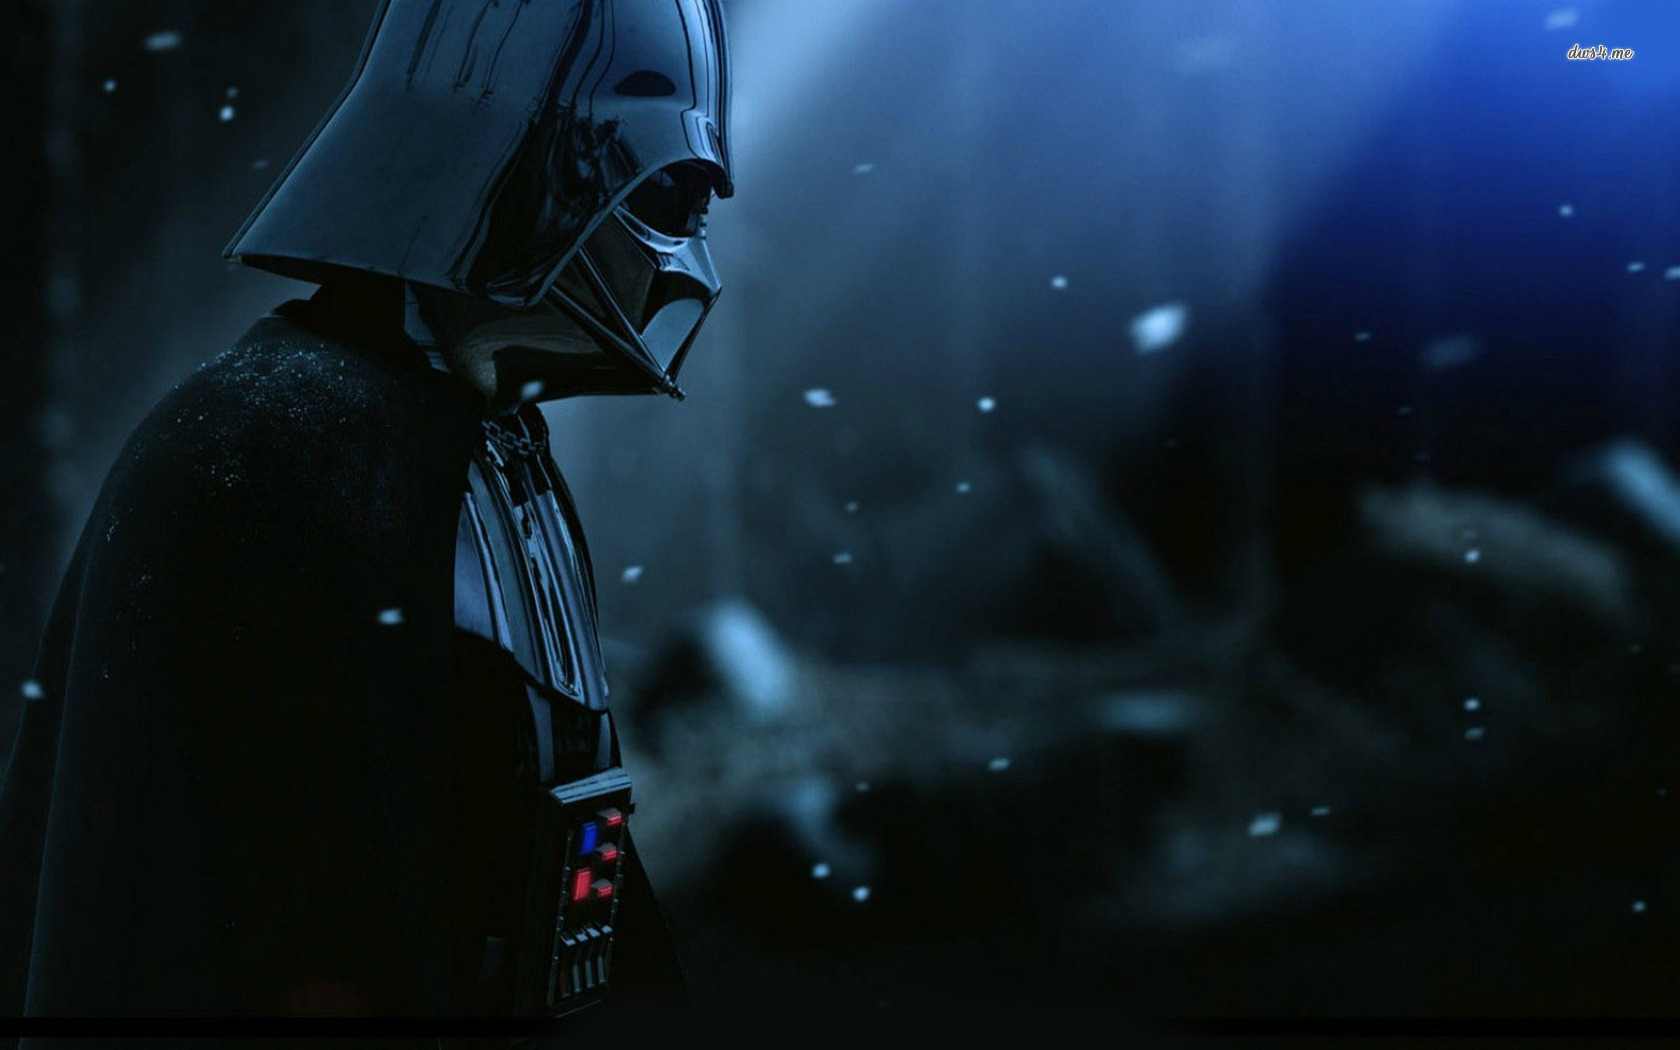 Download image Awesome Star Wars Darth Vader Wallpapers PC, Android ...